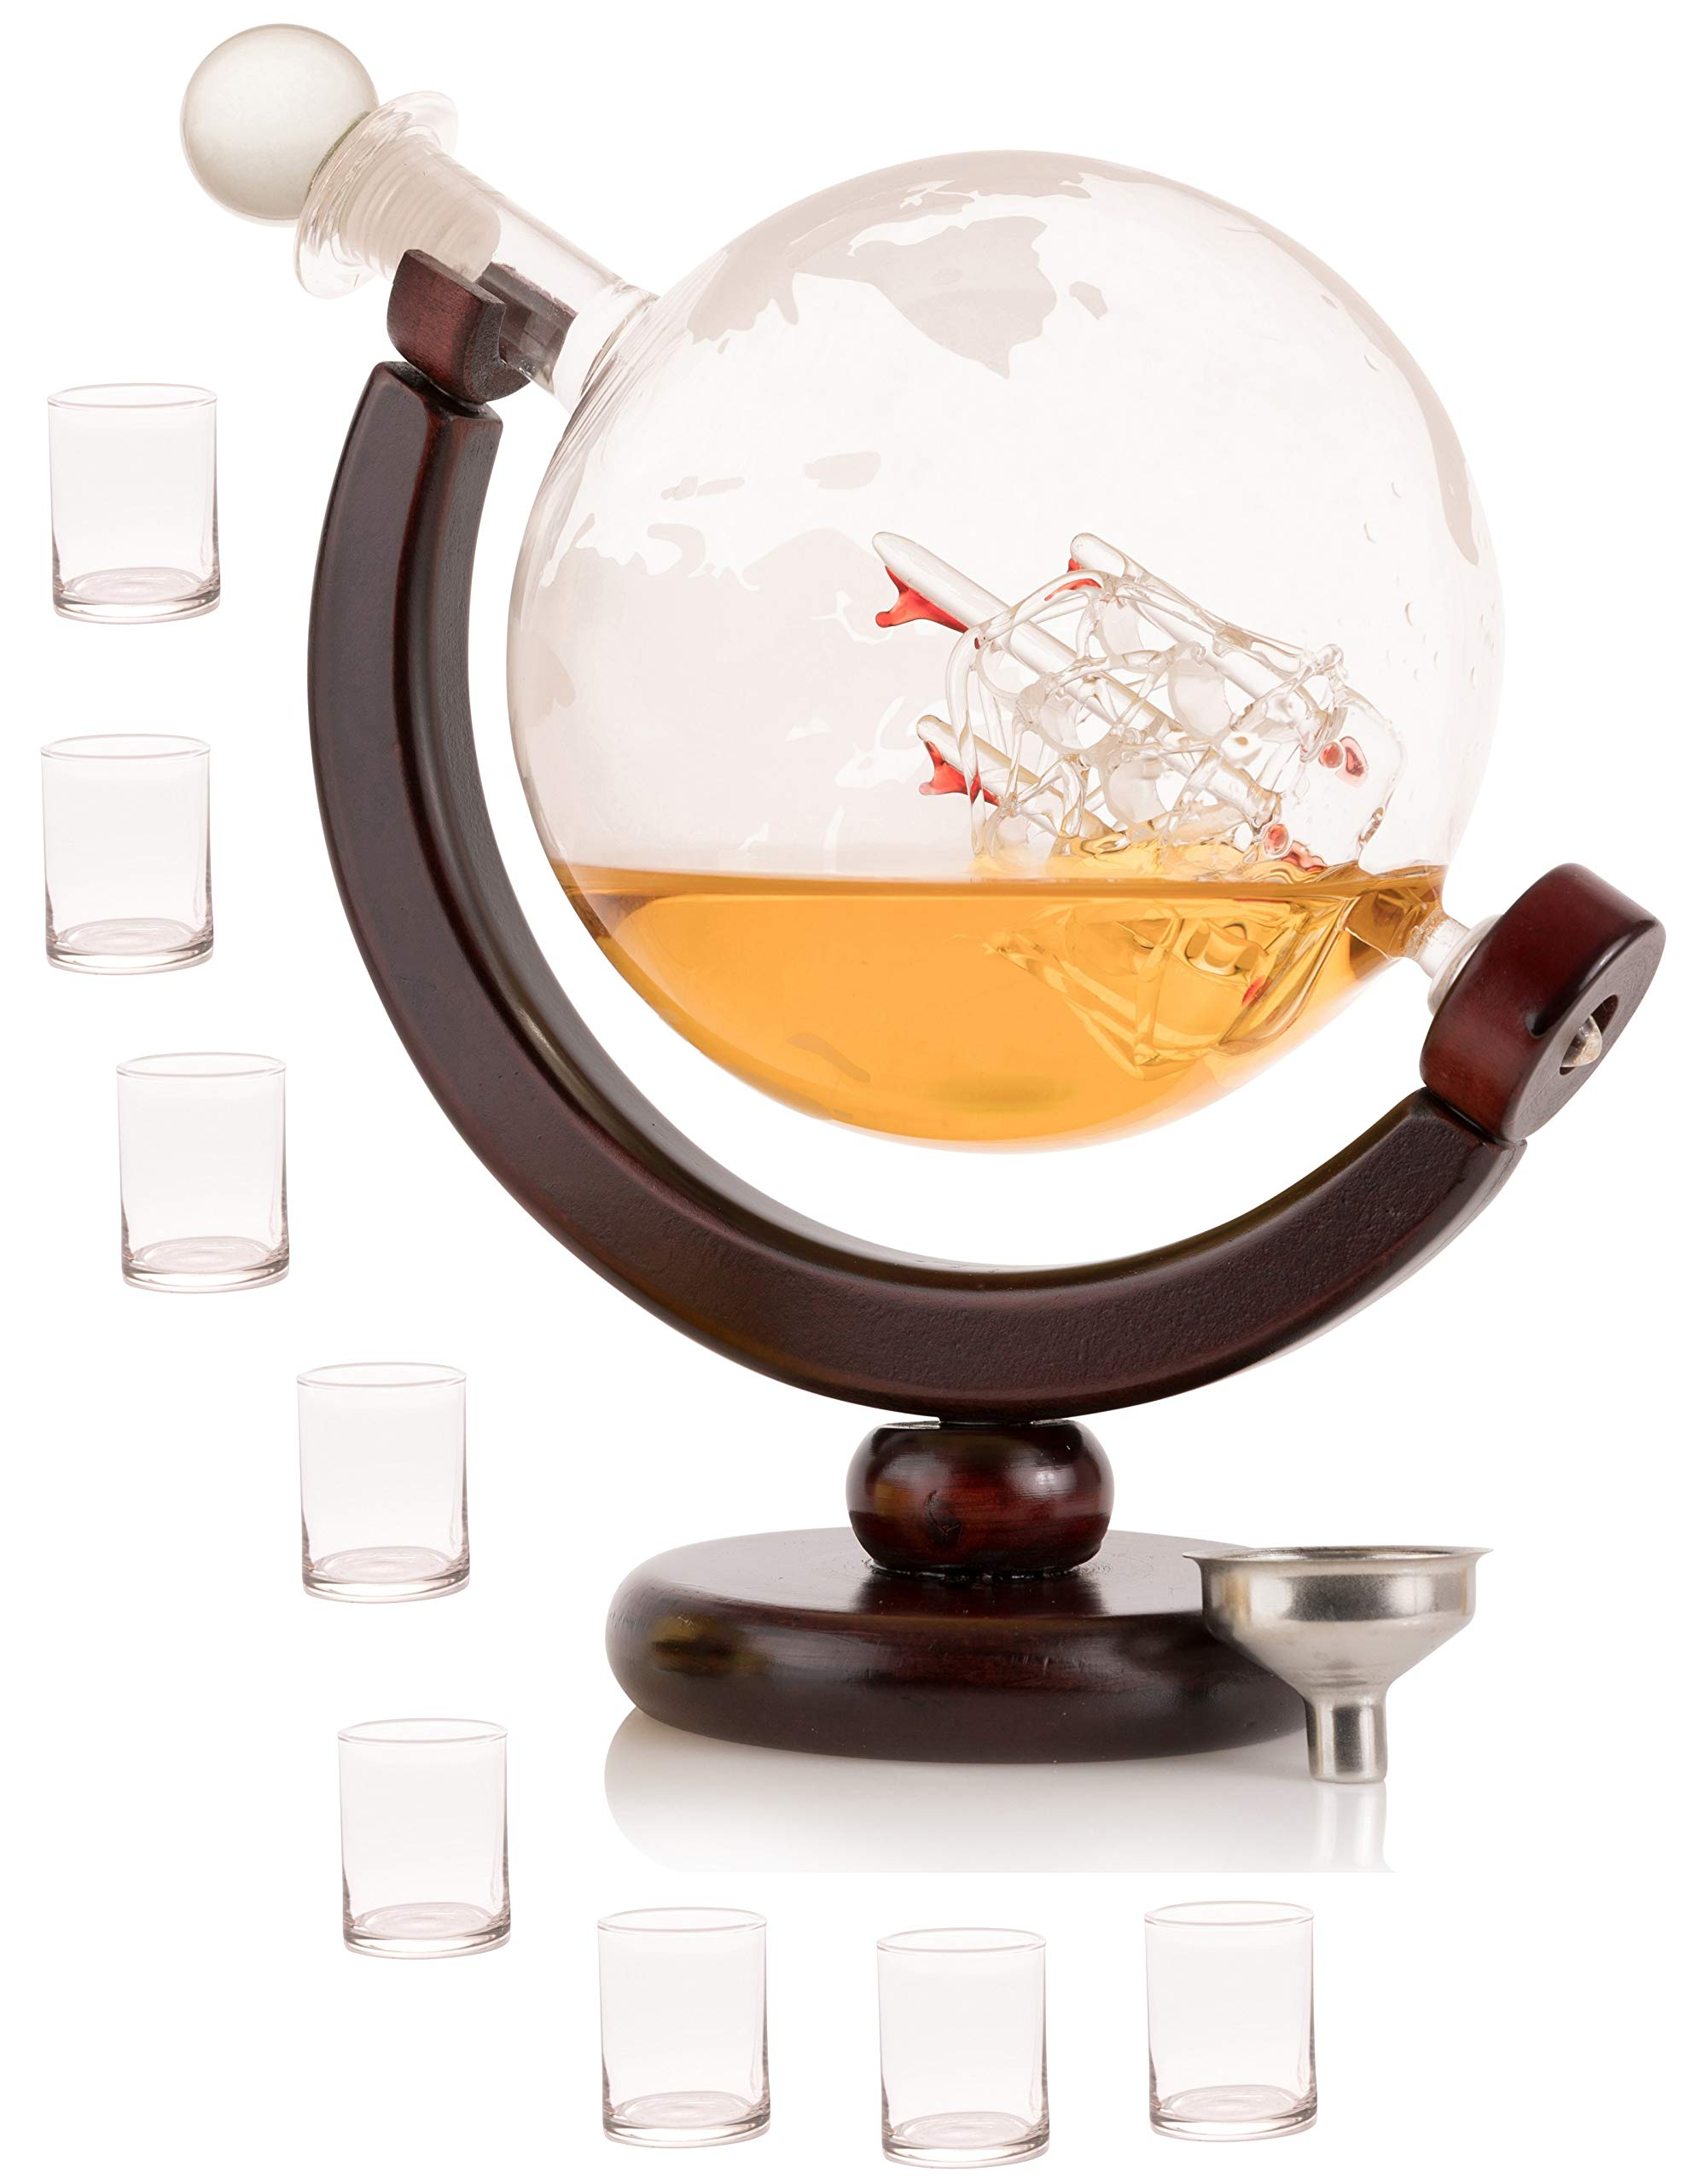 Olivia & Aiden Whiskey Decanter Globe with 8 Shot Glasses (Large 850 mL) World Map Liquor Dispenser | Unique, Vintage, Round | Bourbon, Scotch, Brandy, or Rum by OLIVIA & AIDEN (Image #1)